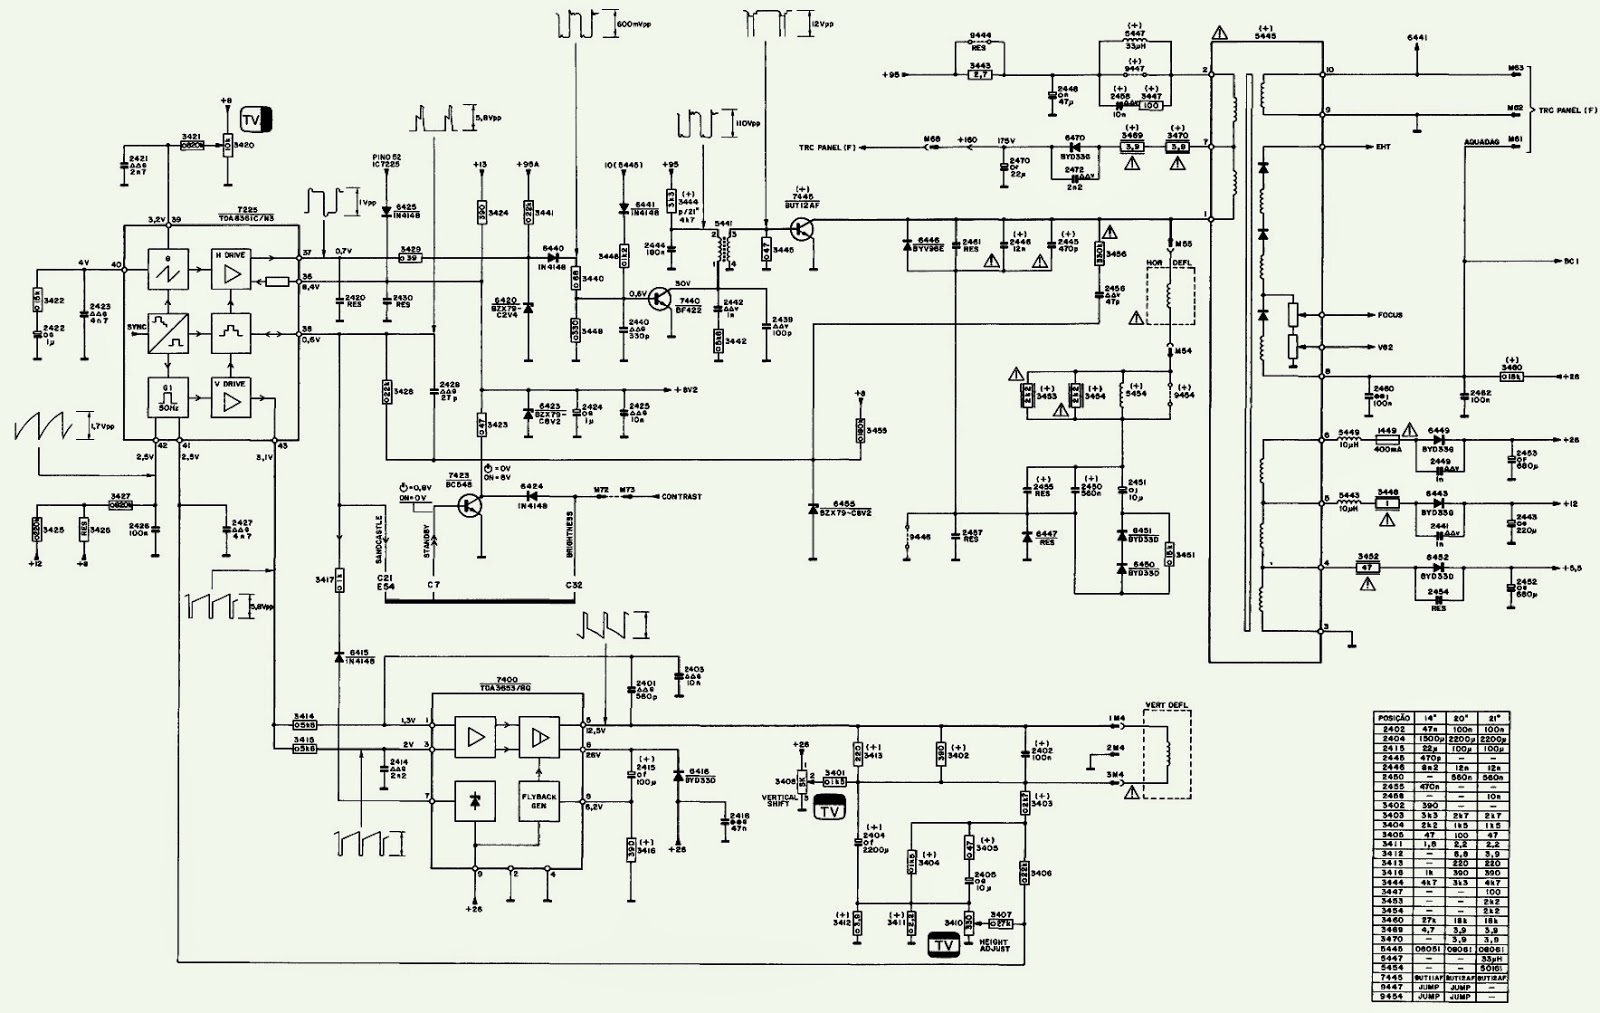 PHILIPS 20 inch CRT TV  Anubis Chassis  CIRCUIT DIAGRAM